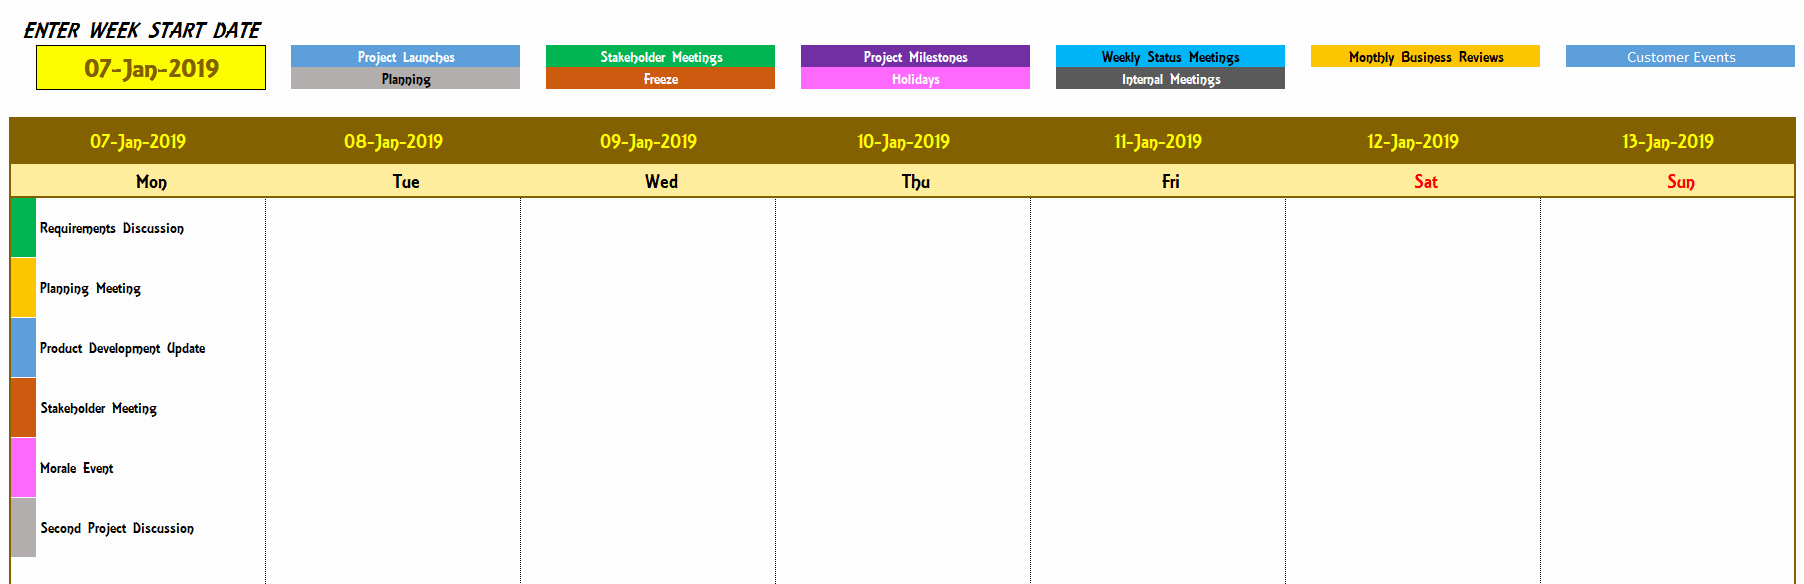 Weekly Schedule Templates Excel Beautiful Excel Calendar Template Excel Calendar 2019 2020 or Any